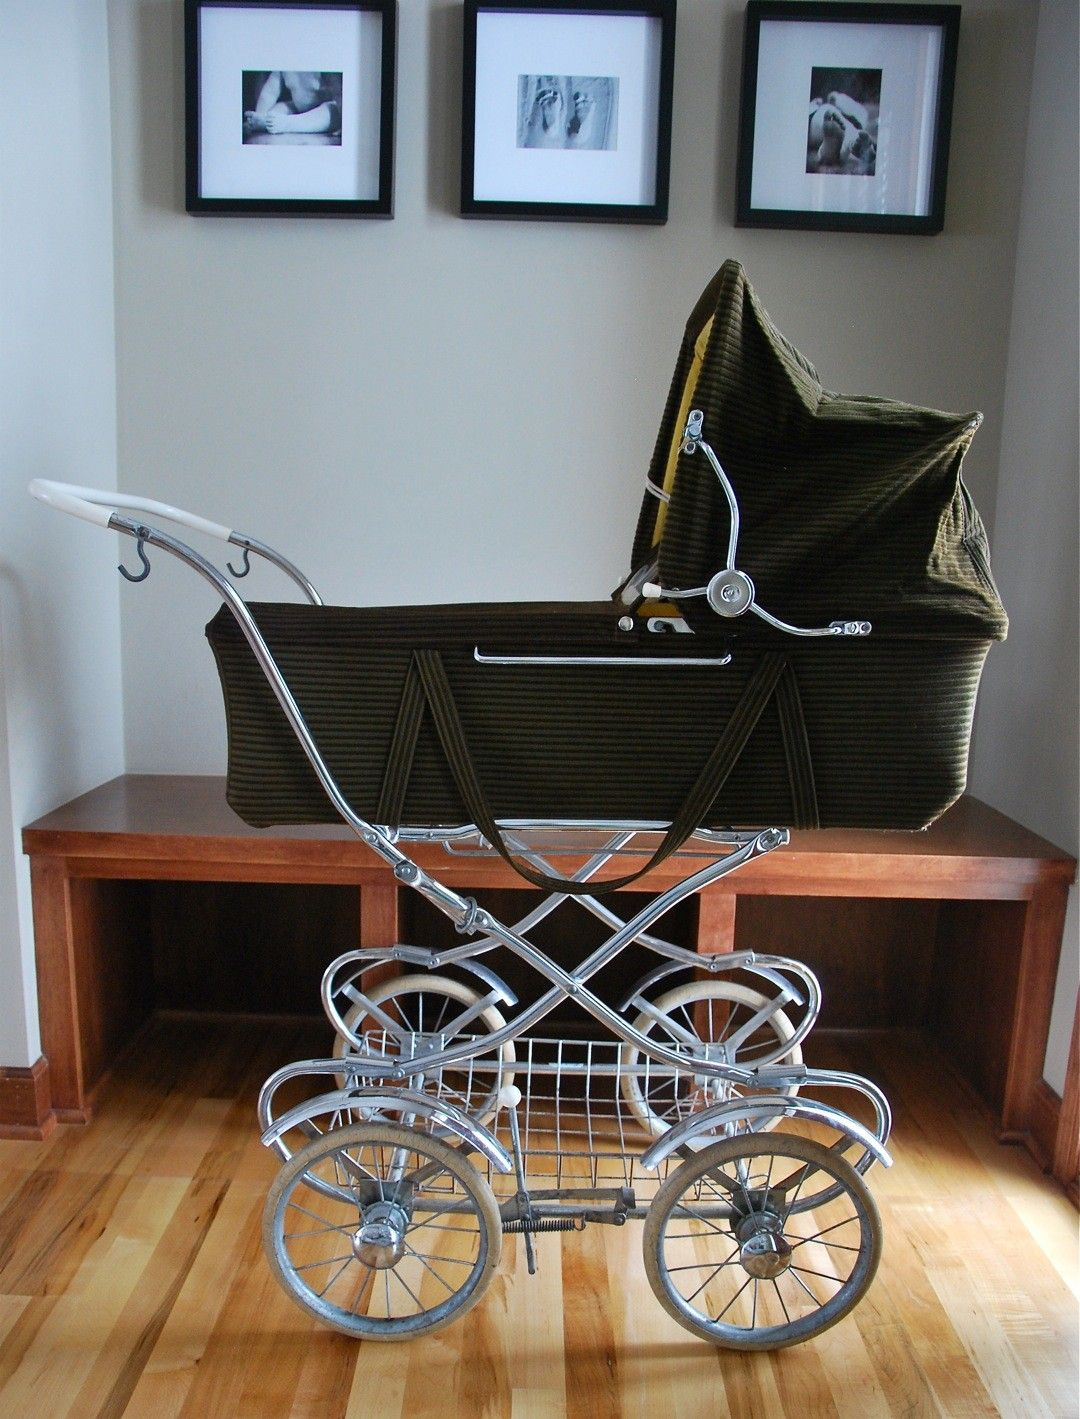 I love these old fashioned baby strollers! Totally want